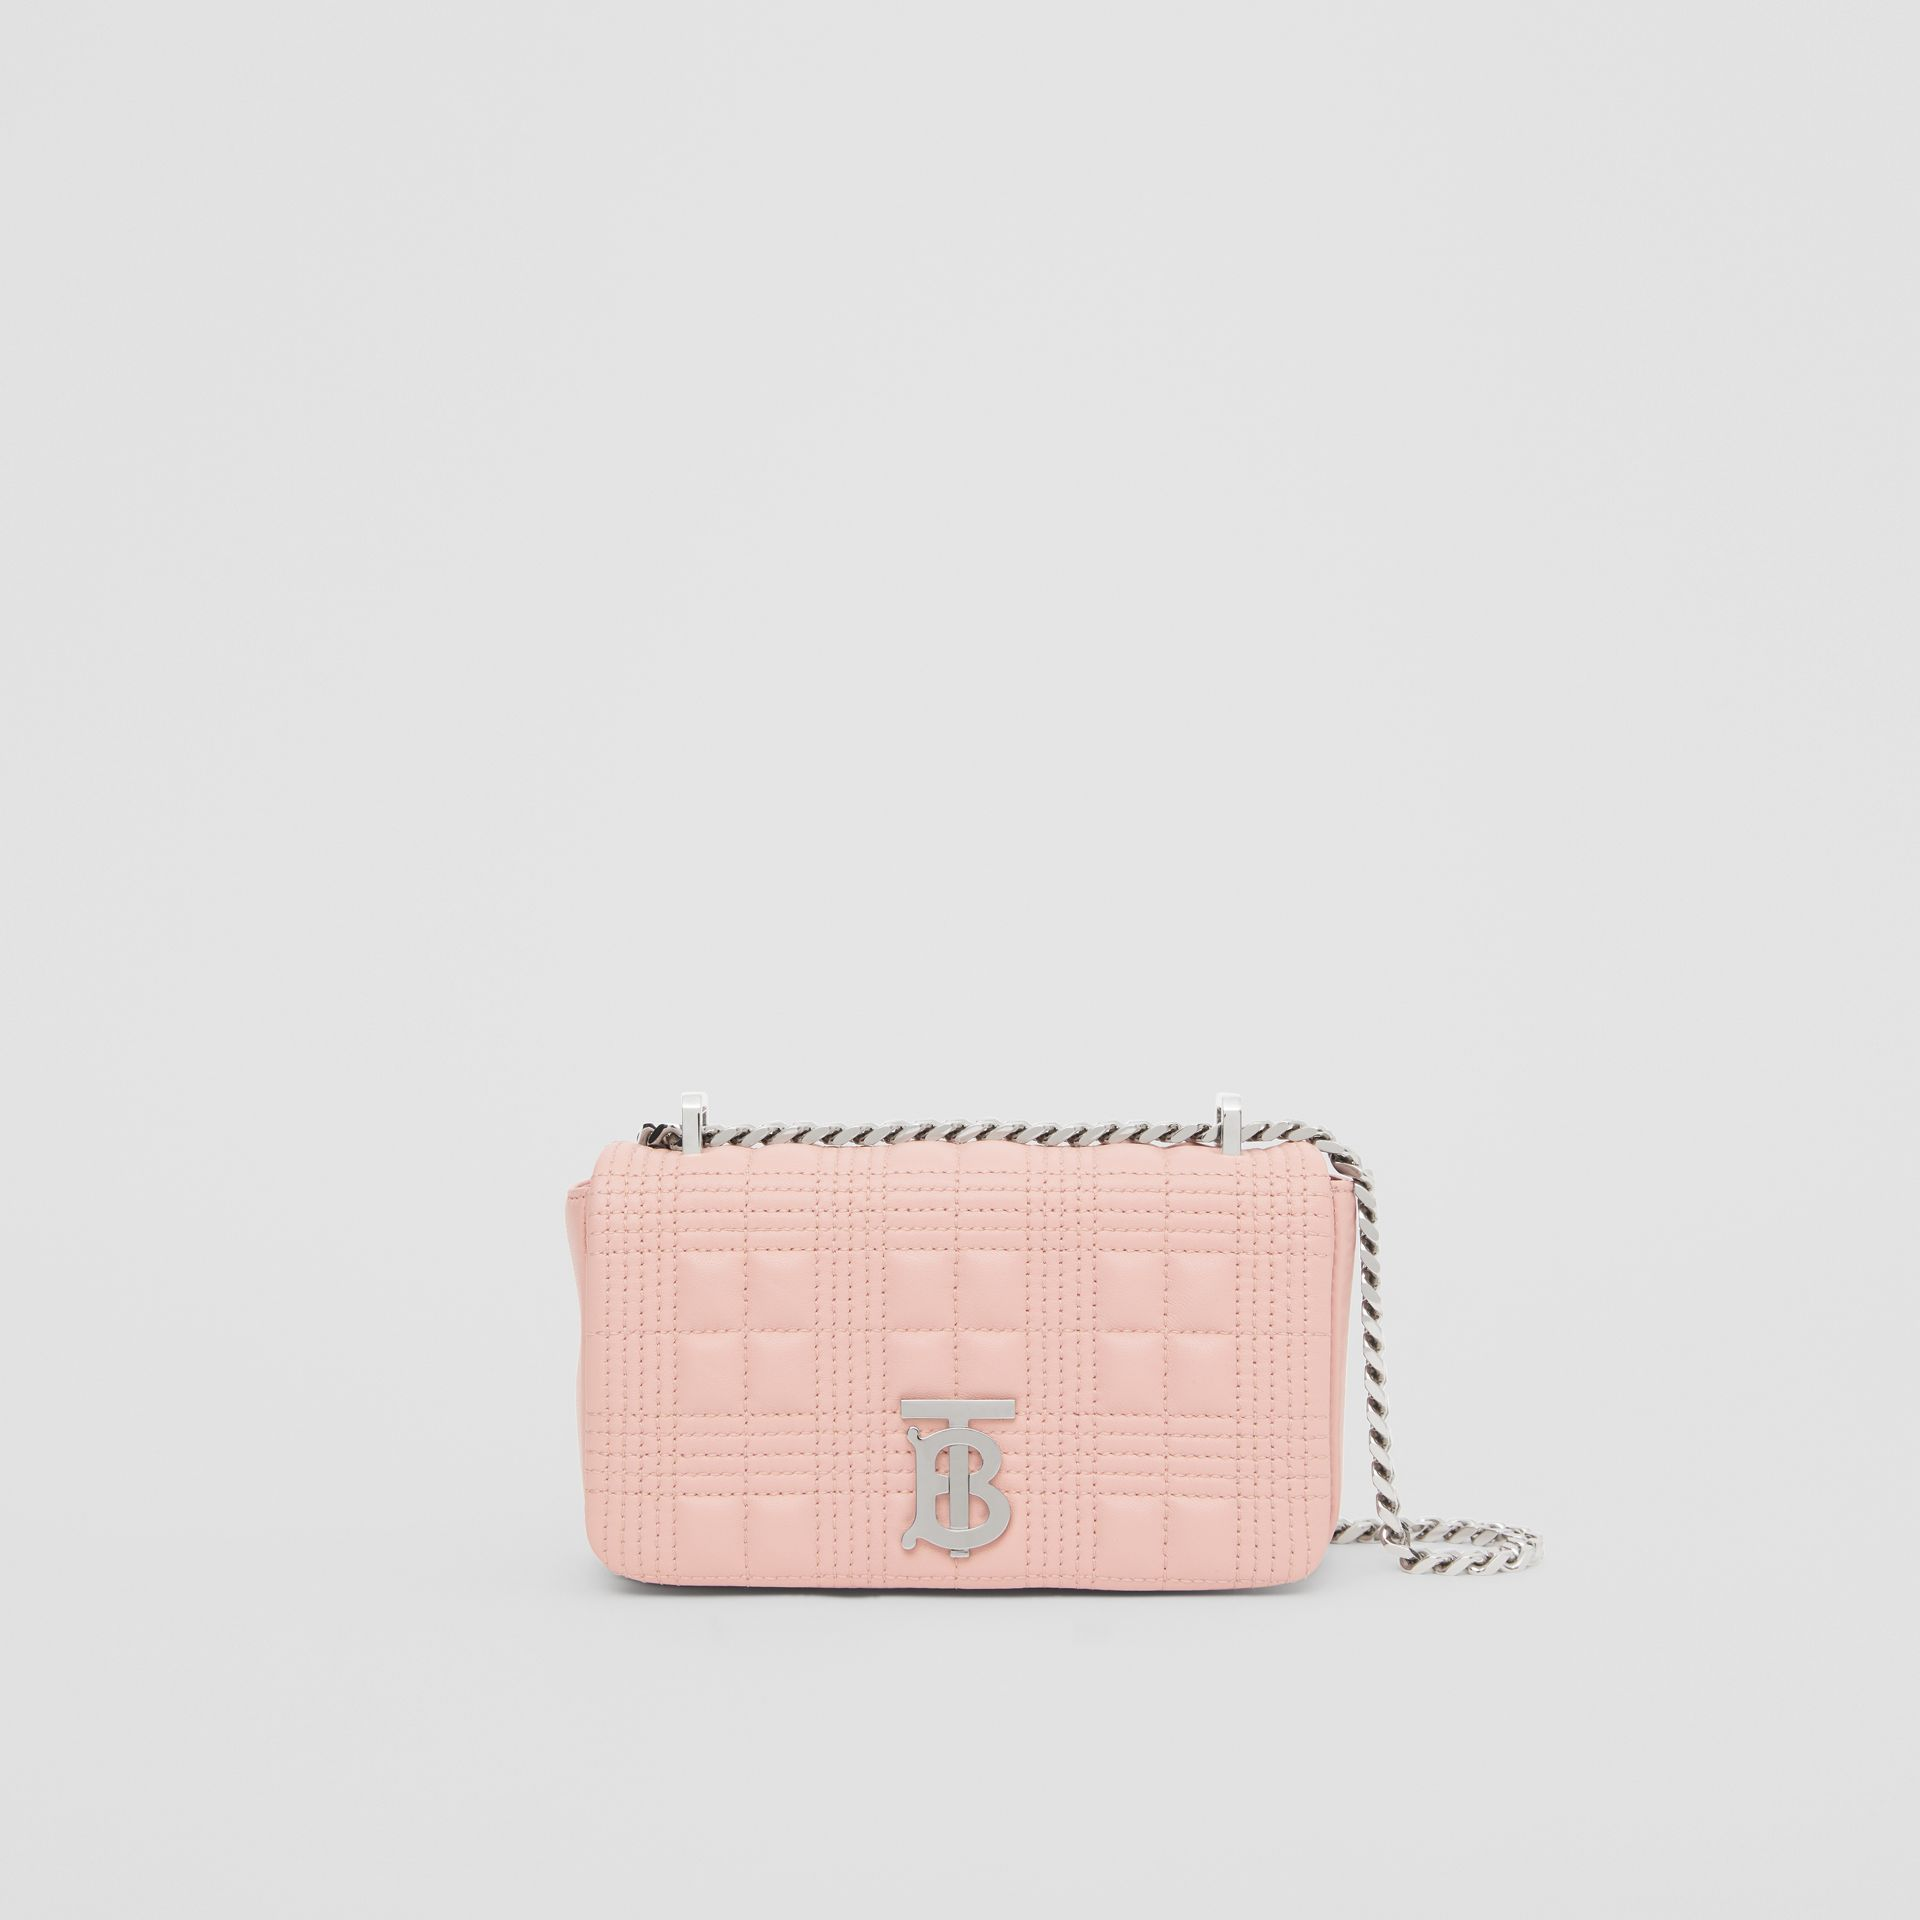 Mini Quilted Lambskin Lola Bag in Blush Pink - Women | Burberry Canada - gallery image 0